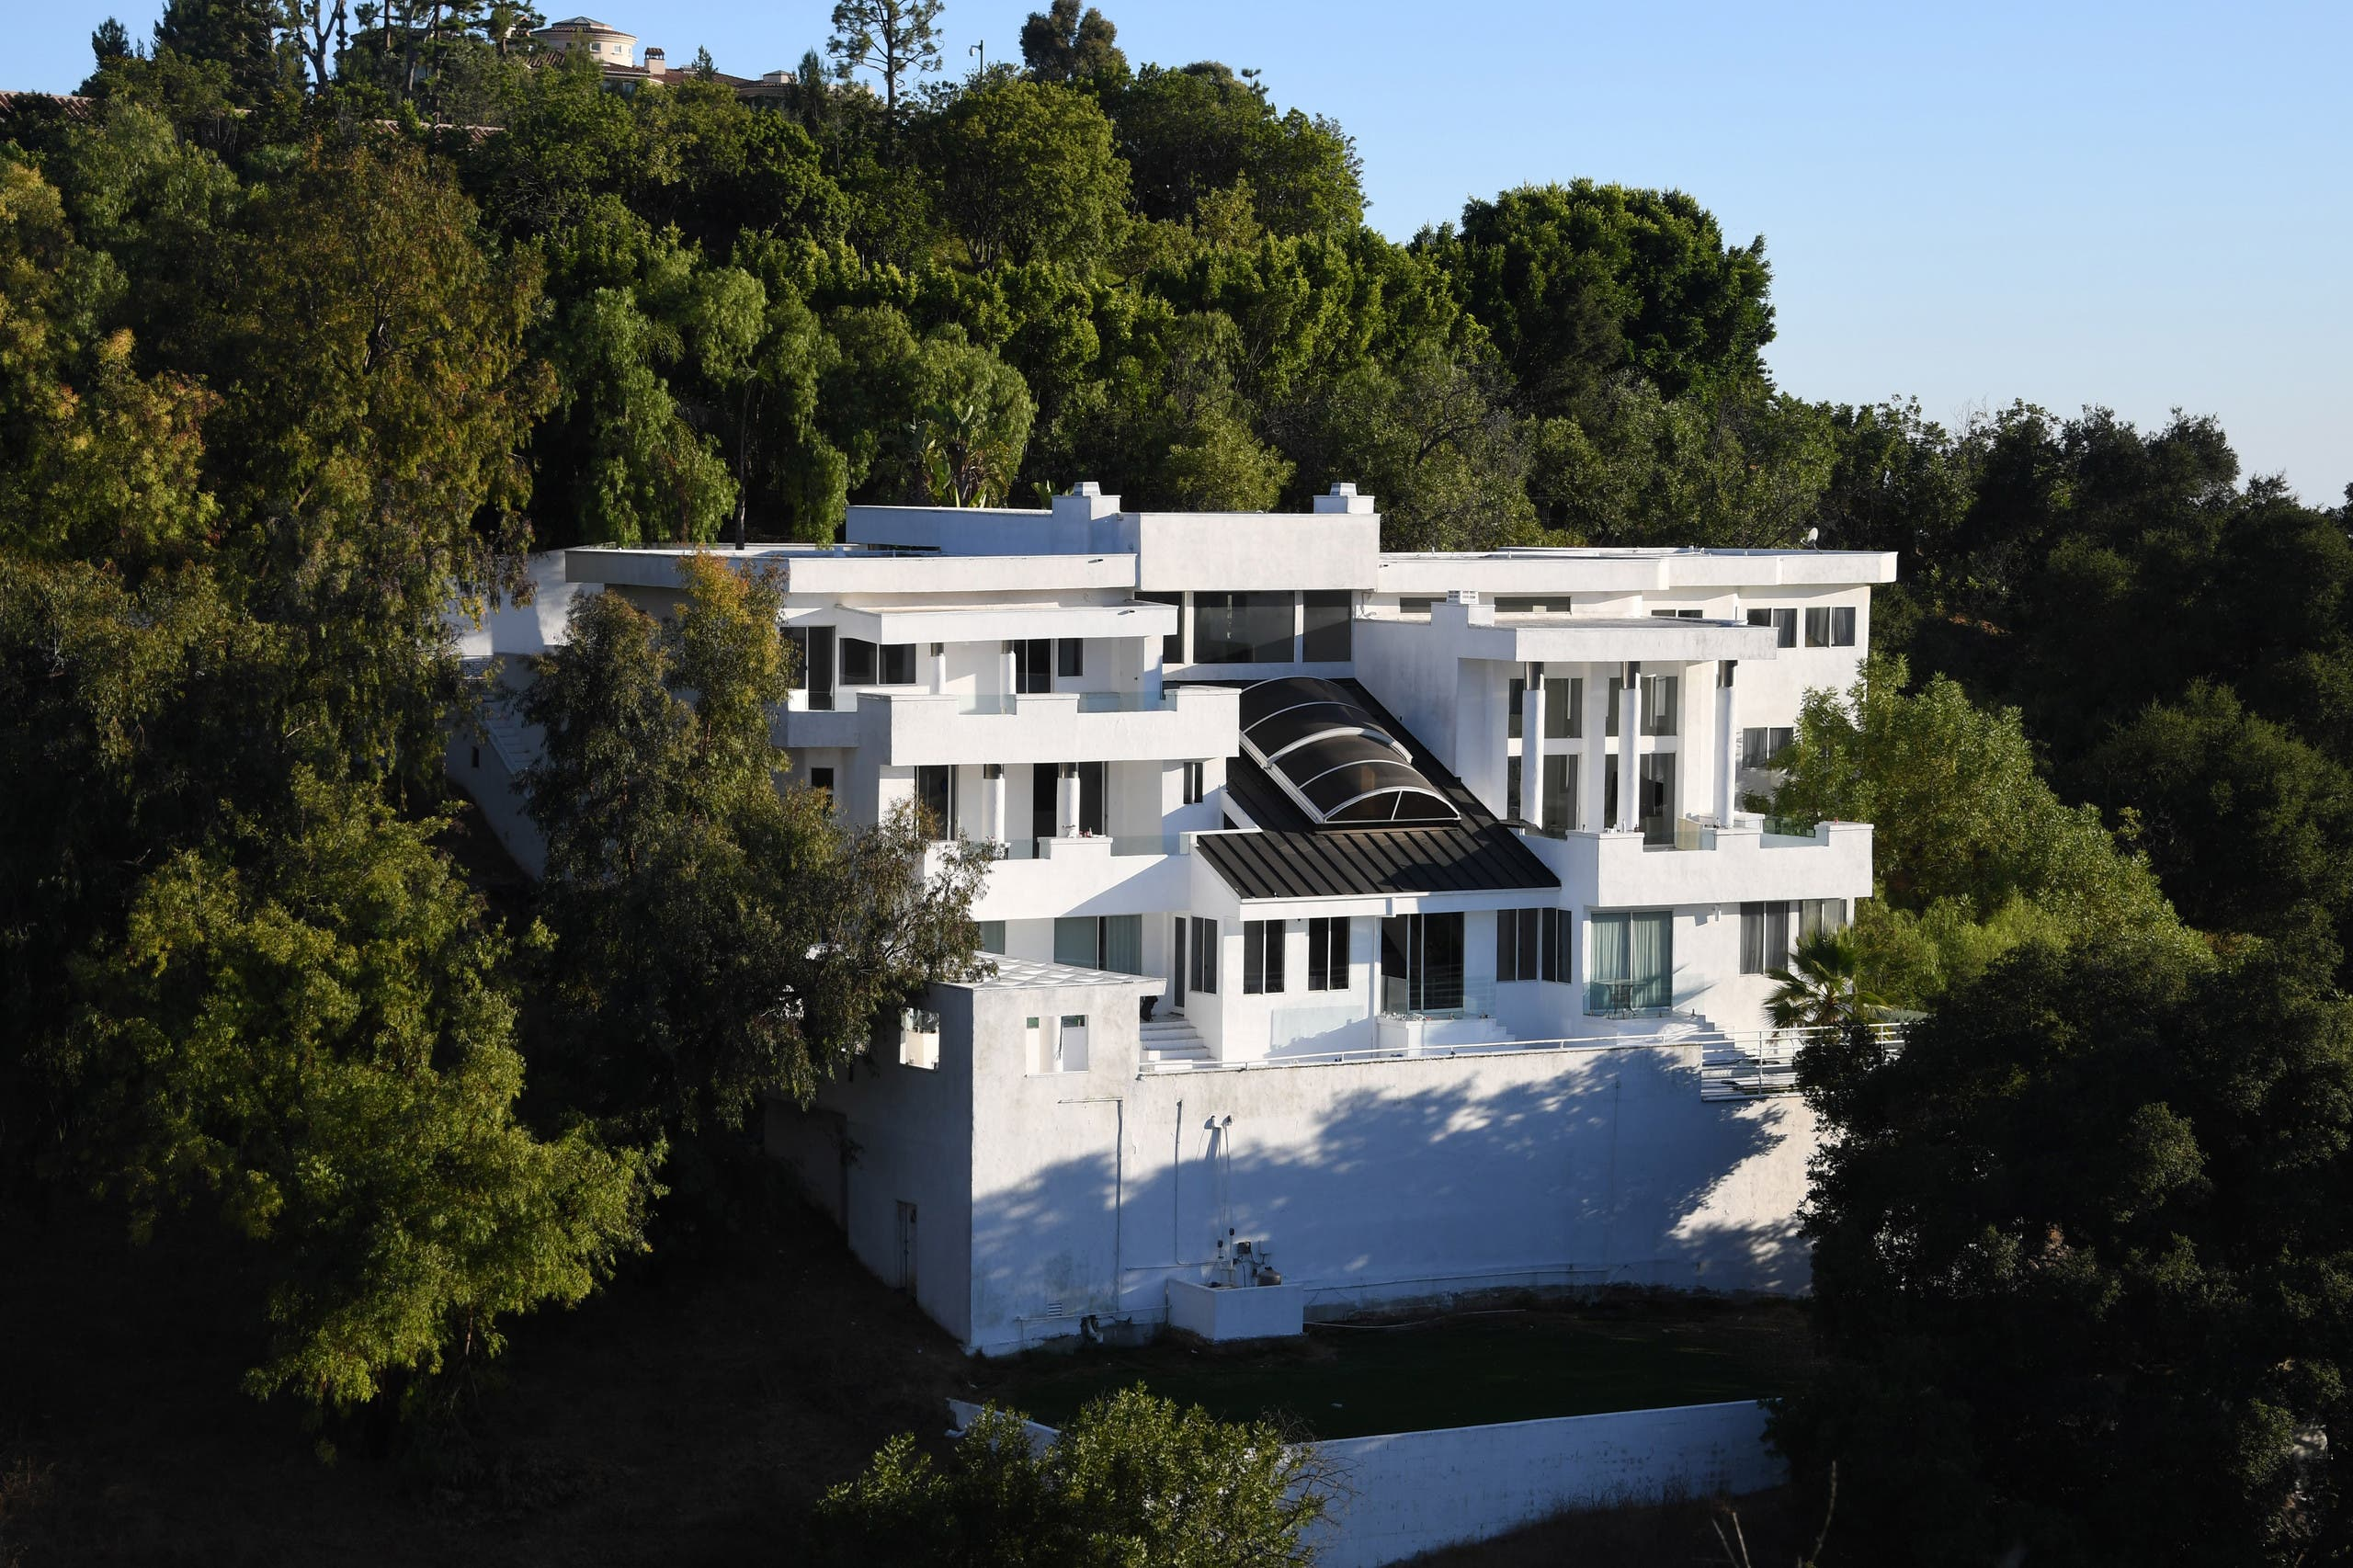 The mansion Palazzo Beverly Hills, where a large party was held in defiance of coronavirus-related health order and ended in a fatal shooting on August 3, is seen on Mulholland drive on August 6, 2020 in Los Angeles, California. (AFP)